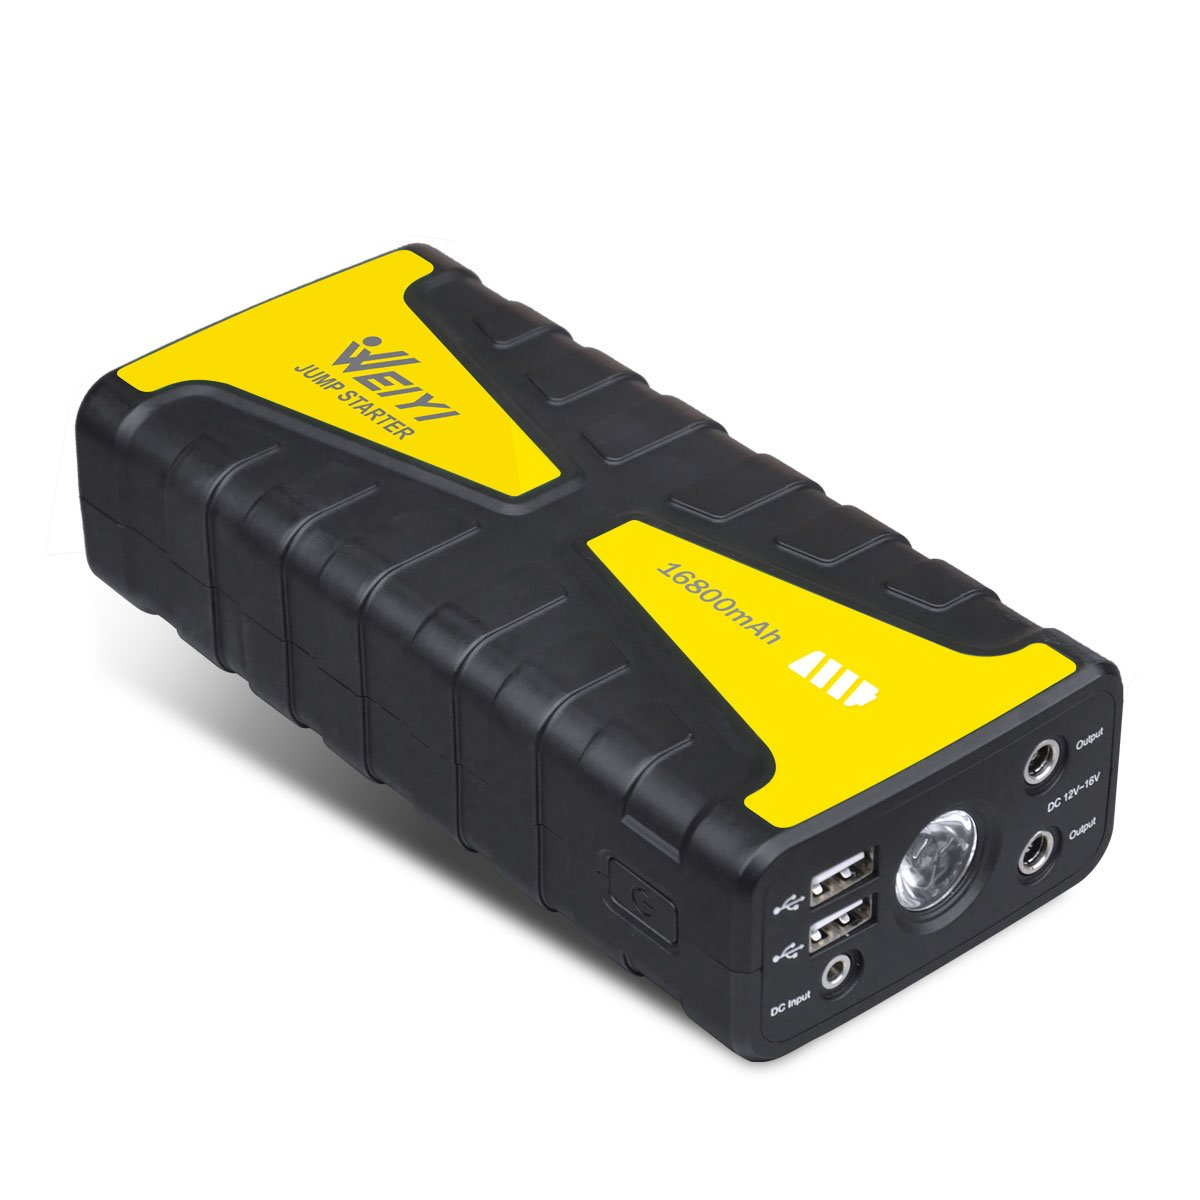 Weiyi 800A Peak Current 16800mAh Portable Car Jump Starter With Bright LED Light & SOS & And External High Rate Multivariate Battery Charger With 2 USB Ports